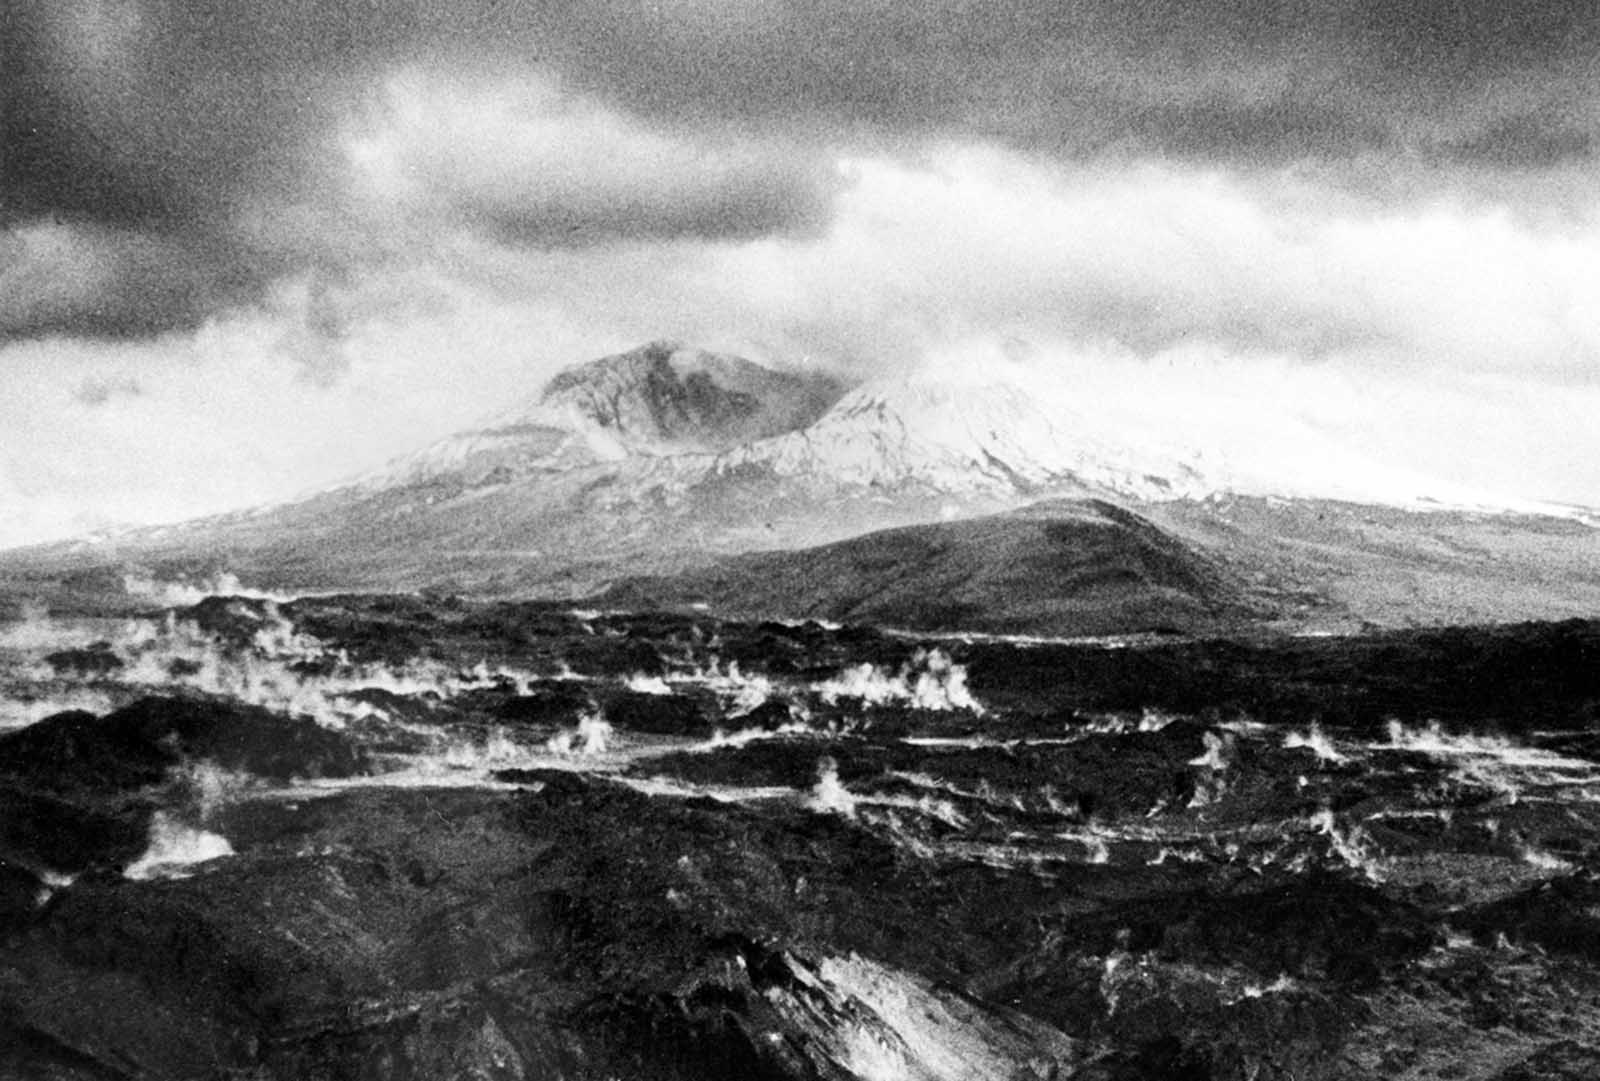 The crater left at the summit of Mt. St. Helens, after it lost more than 1,300 feet of elevation to the catastrophic landslide and eruption of May 18, 1980, the surrounding landscape still steaming.